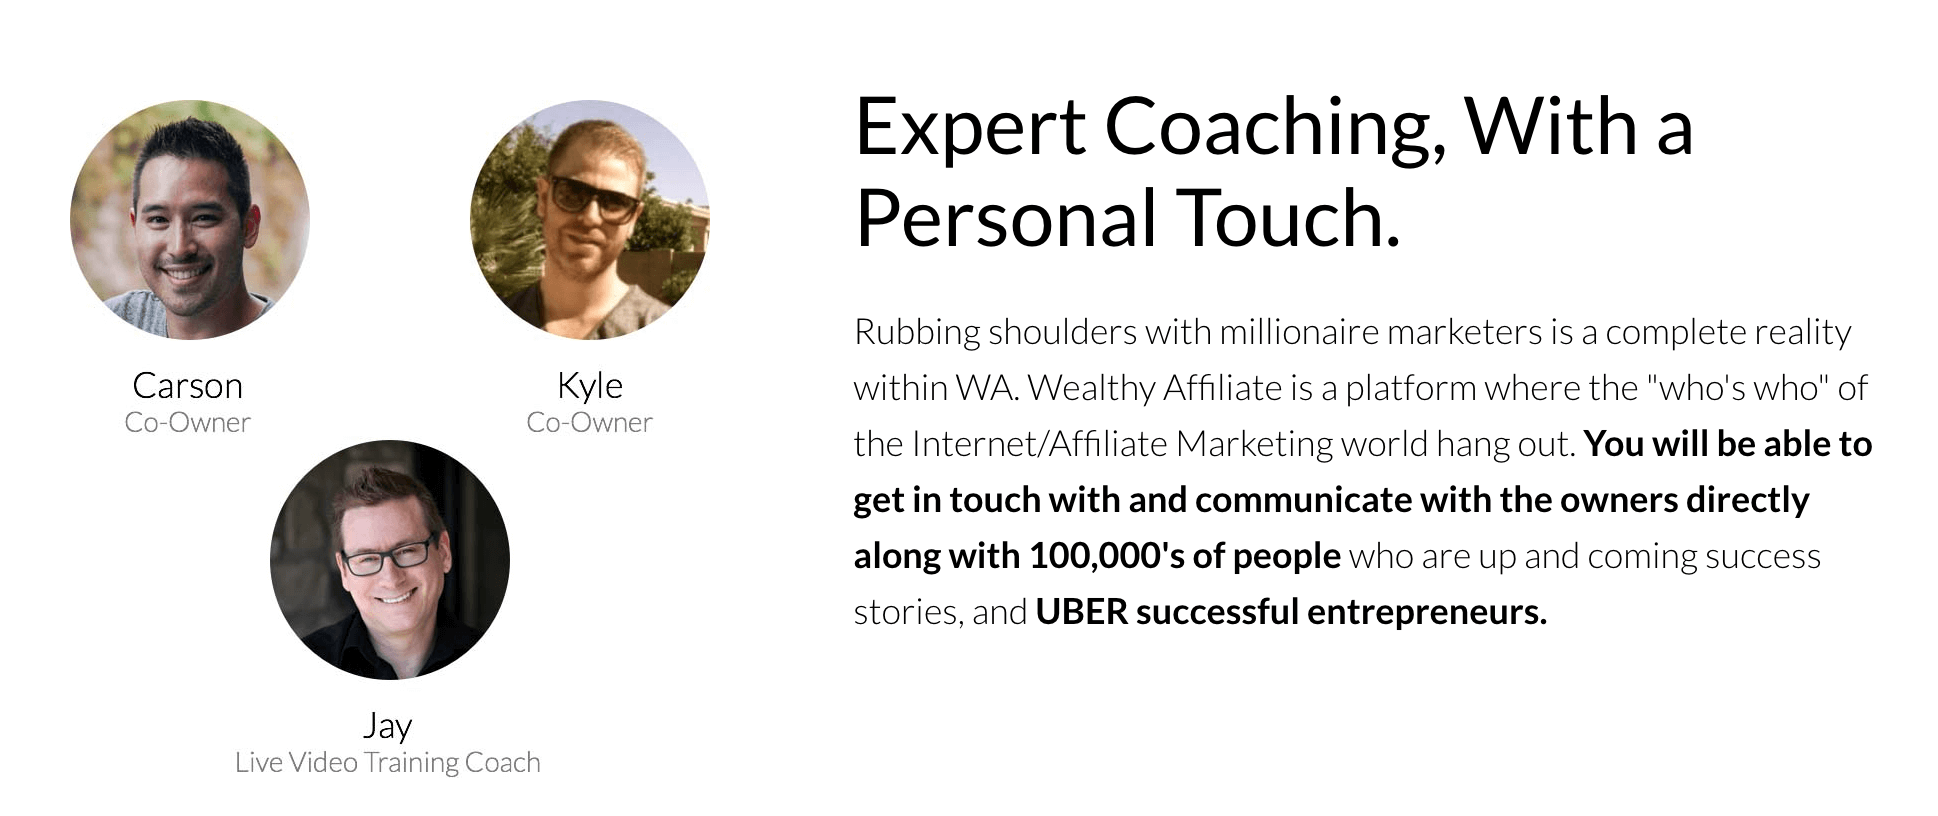 support through expert coaching